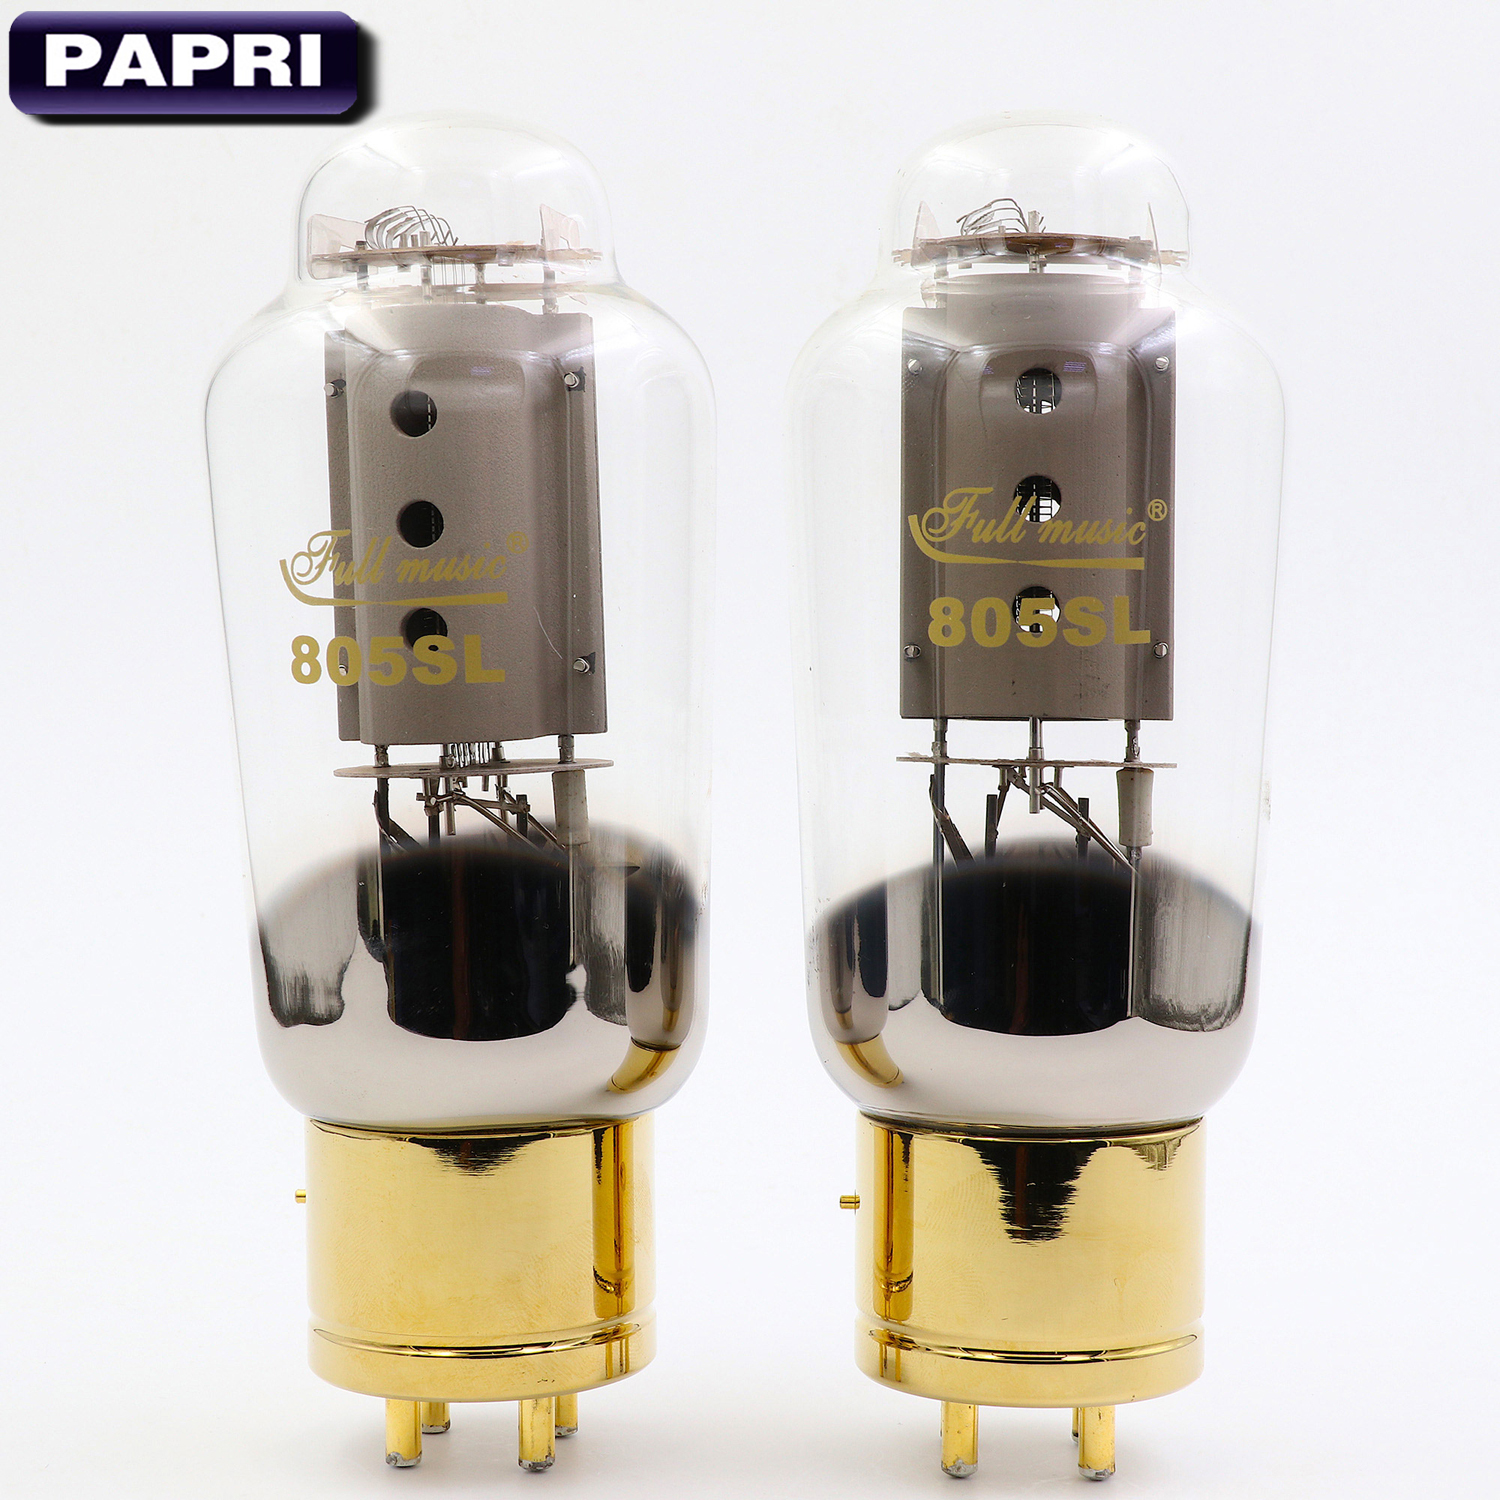 New TJ Fullmusic 805SL Vacuum Tube Vintage DIY Replace 805 Tube For HiFi Amplifier Audio Speaker 2PCS/Lot Test Matched Pair brand new matched pair quad tj fullmusic kt88 cne kt88cne vacuum power tube replace kt88 6550 hifi vintage tube audio amp diy